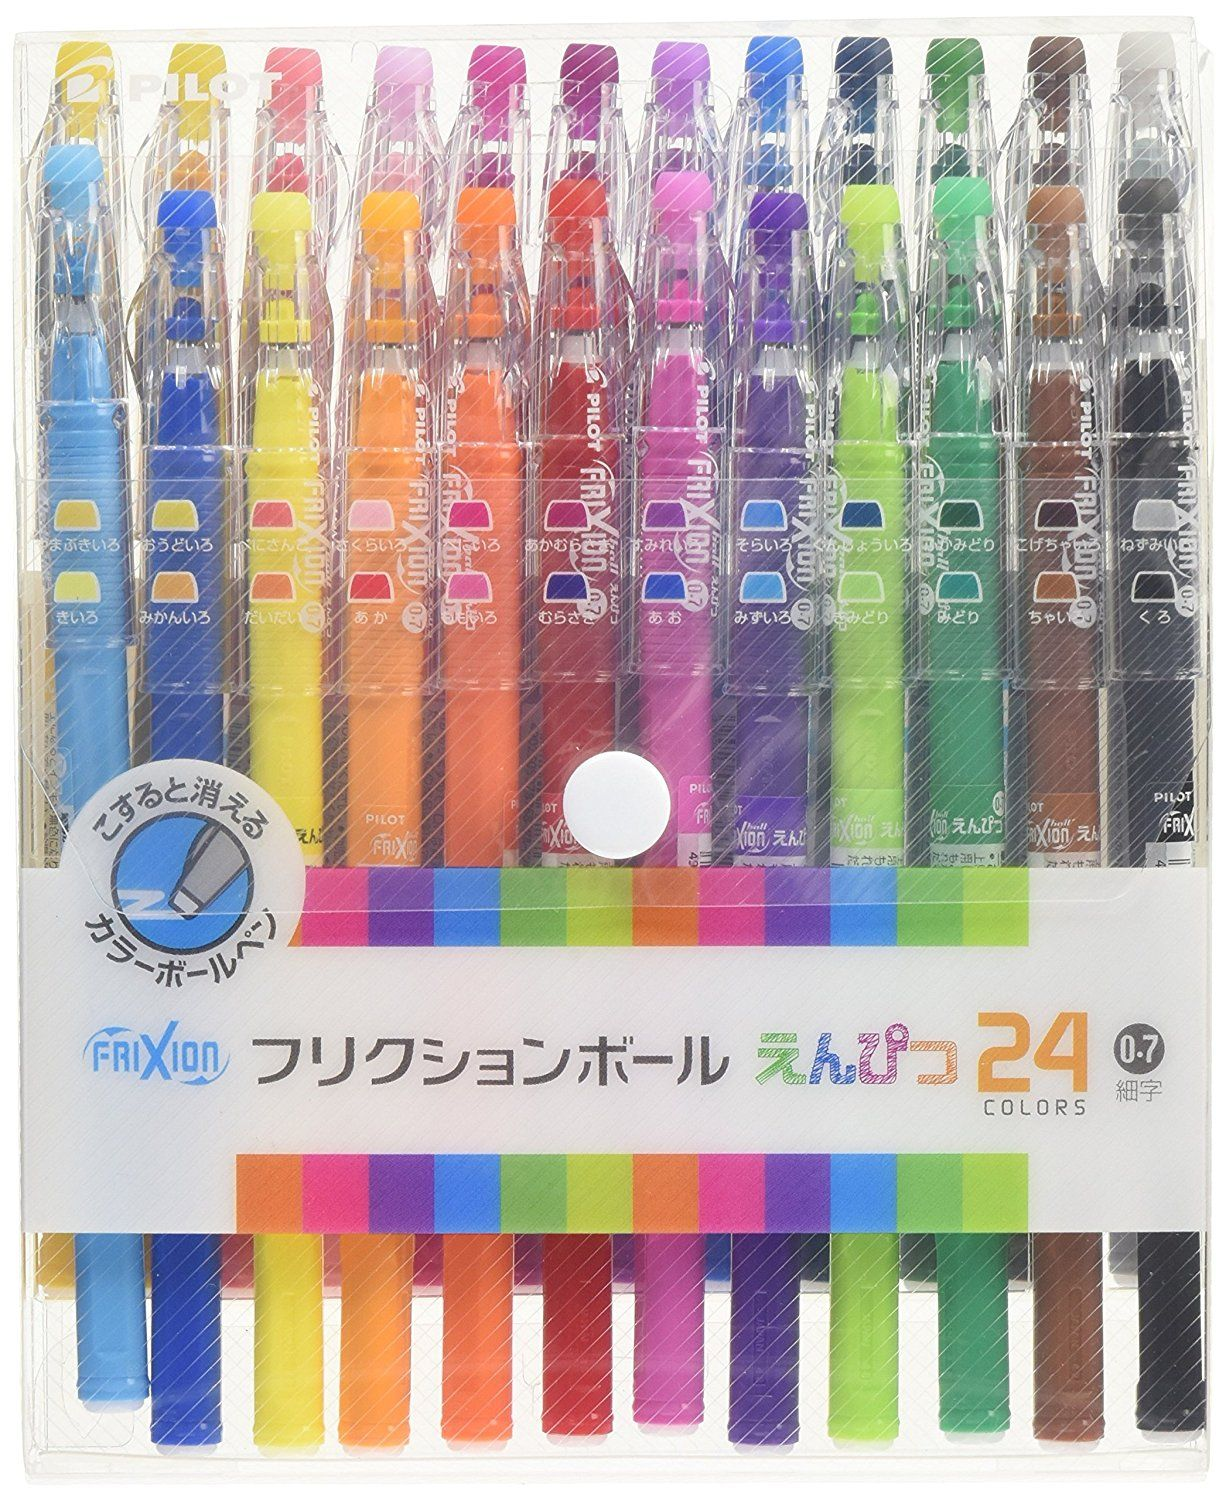 24 Colors Set, Pilot FriXion Pencil LFP-312FN-24C 0.7mm Ballpoint Pen